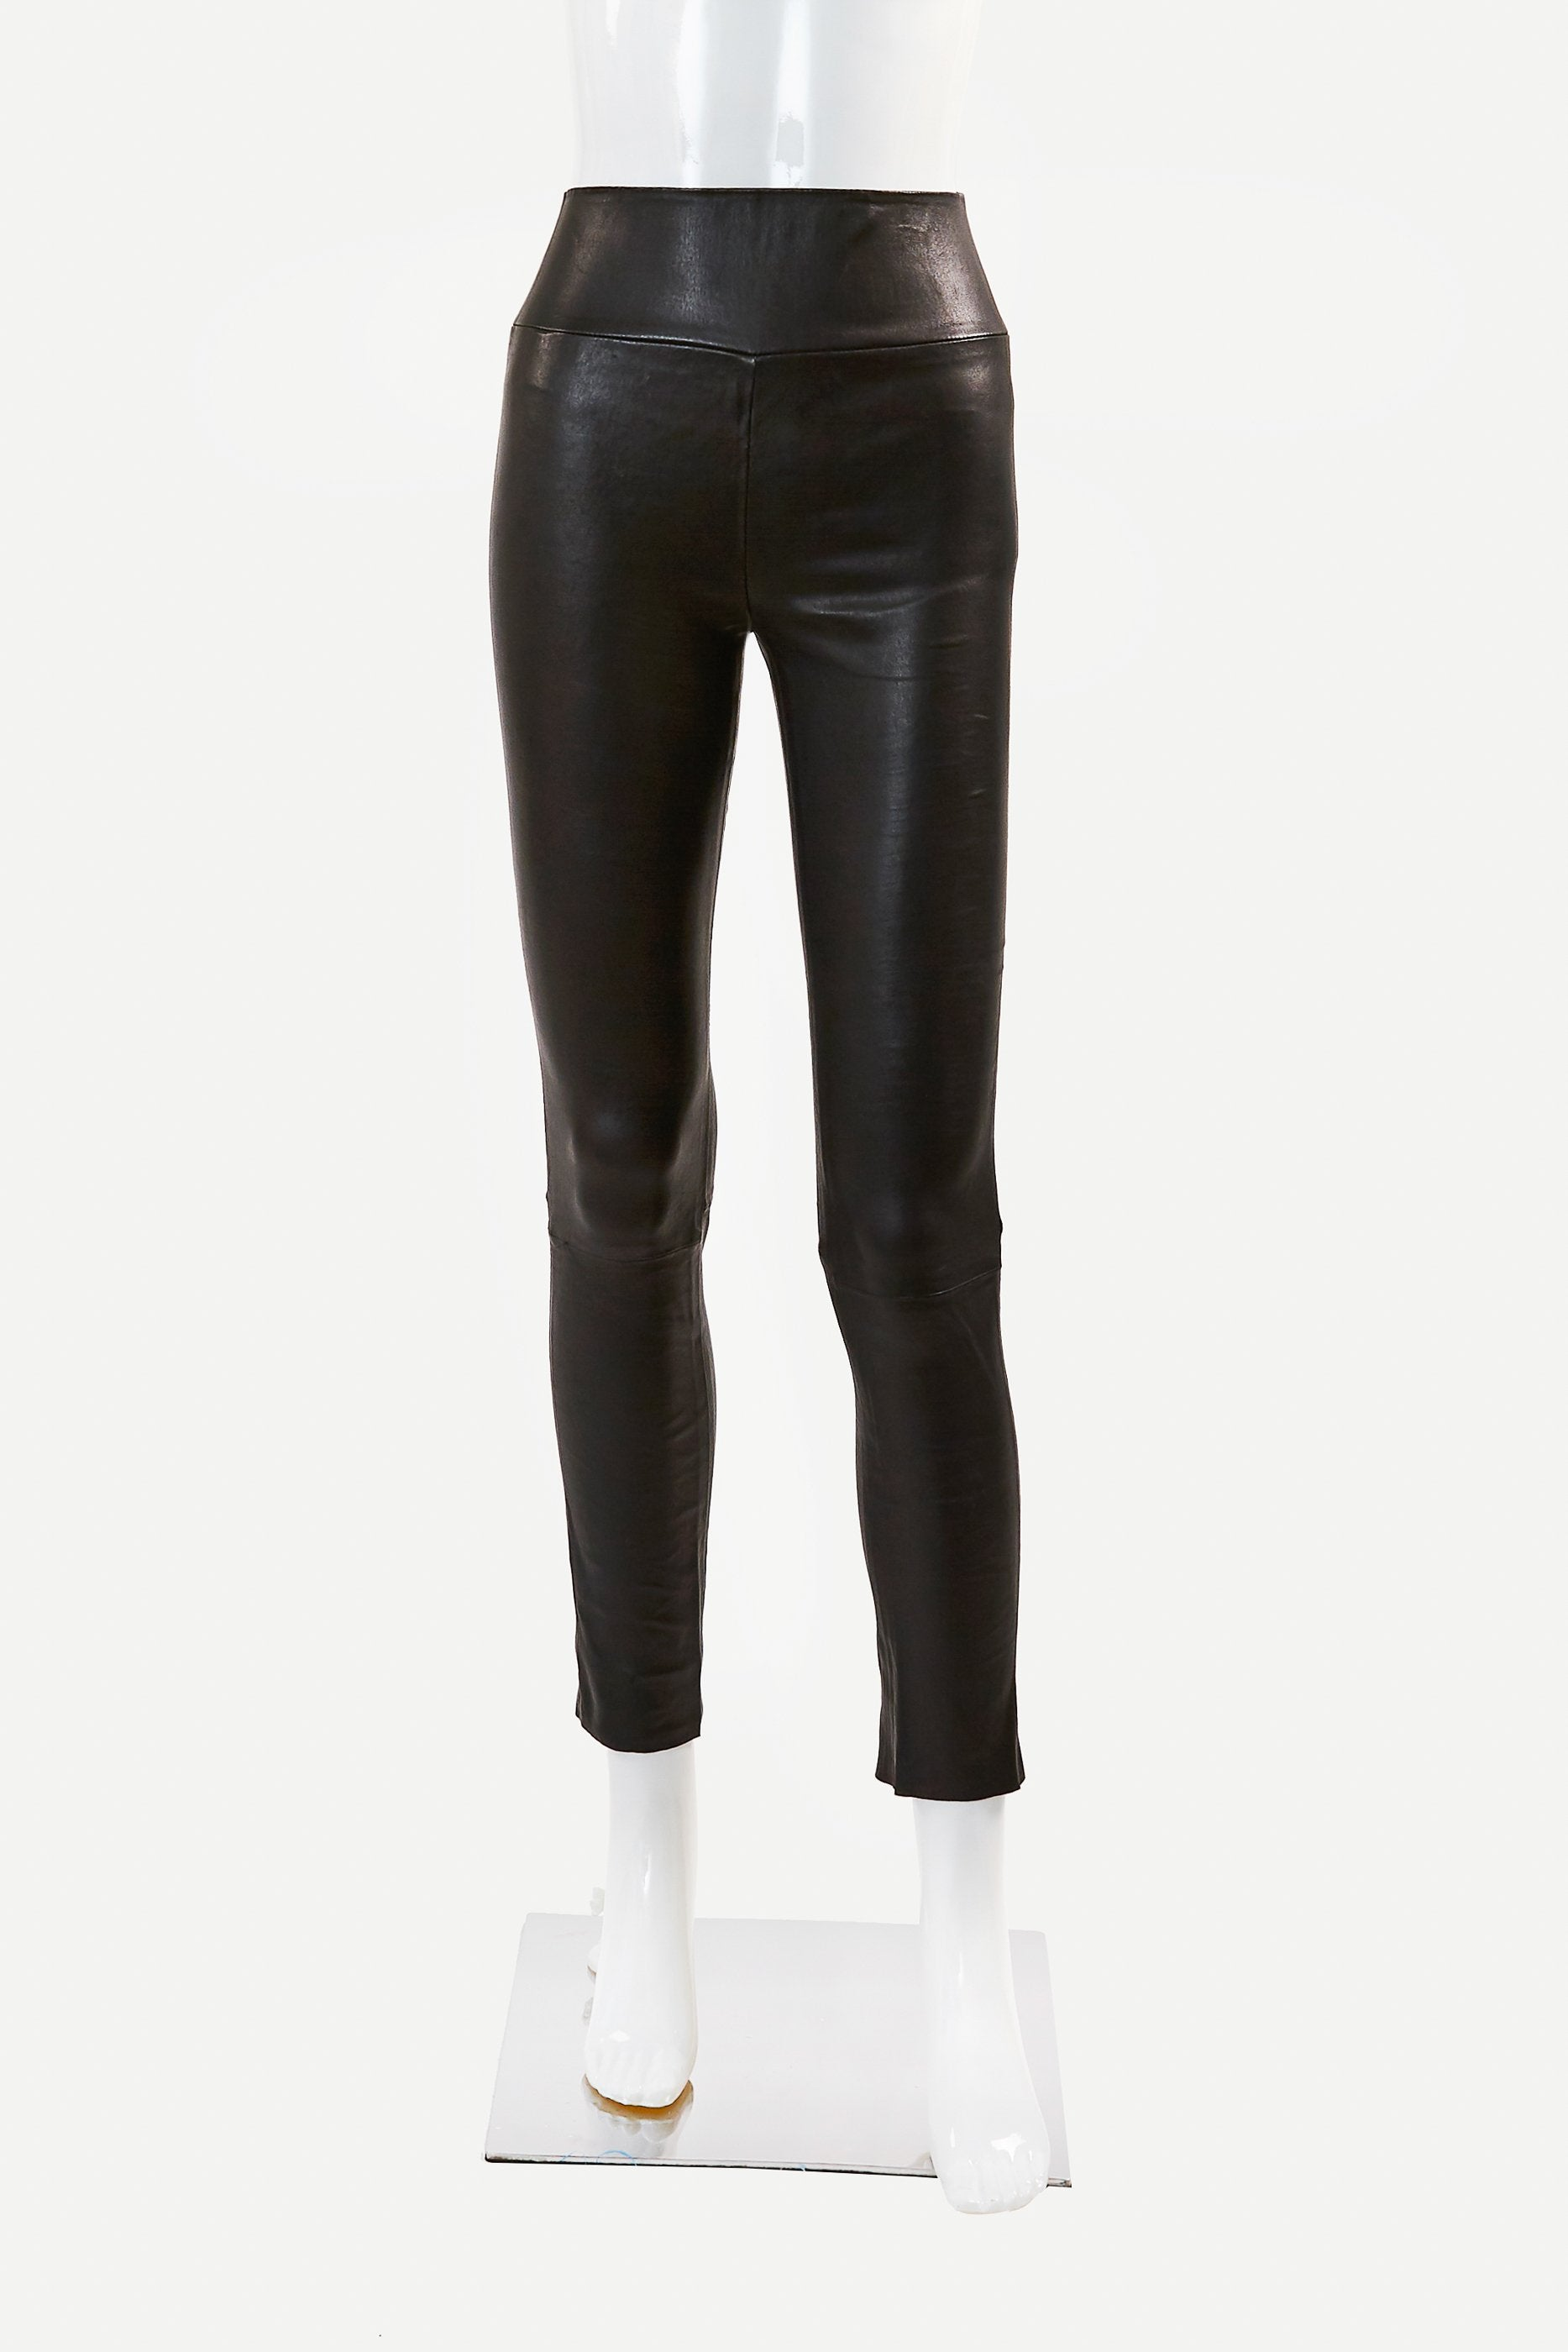 ad584bb4e High Waist Leather Ankle Leggings – State of Mind | Curated by C ...